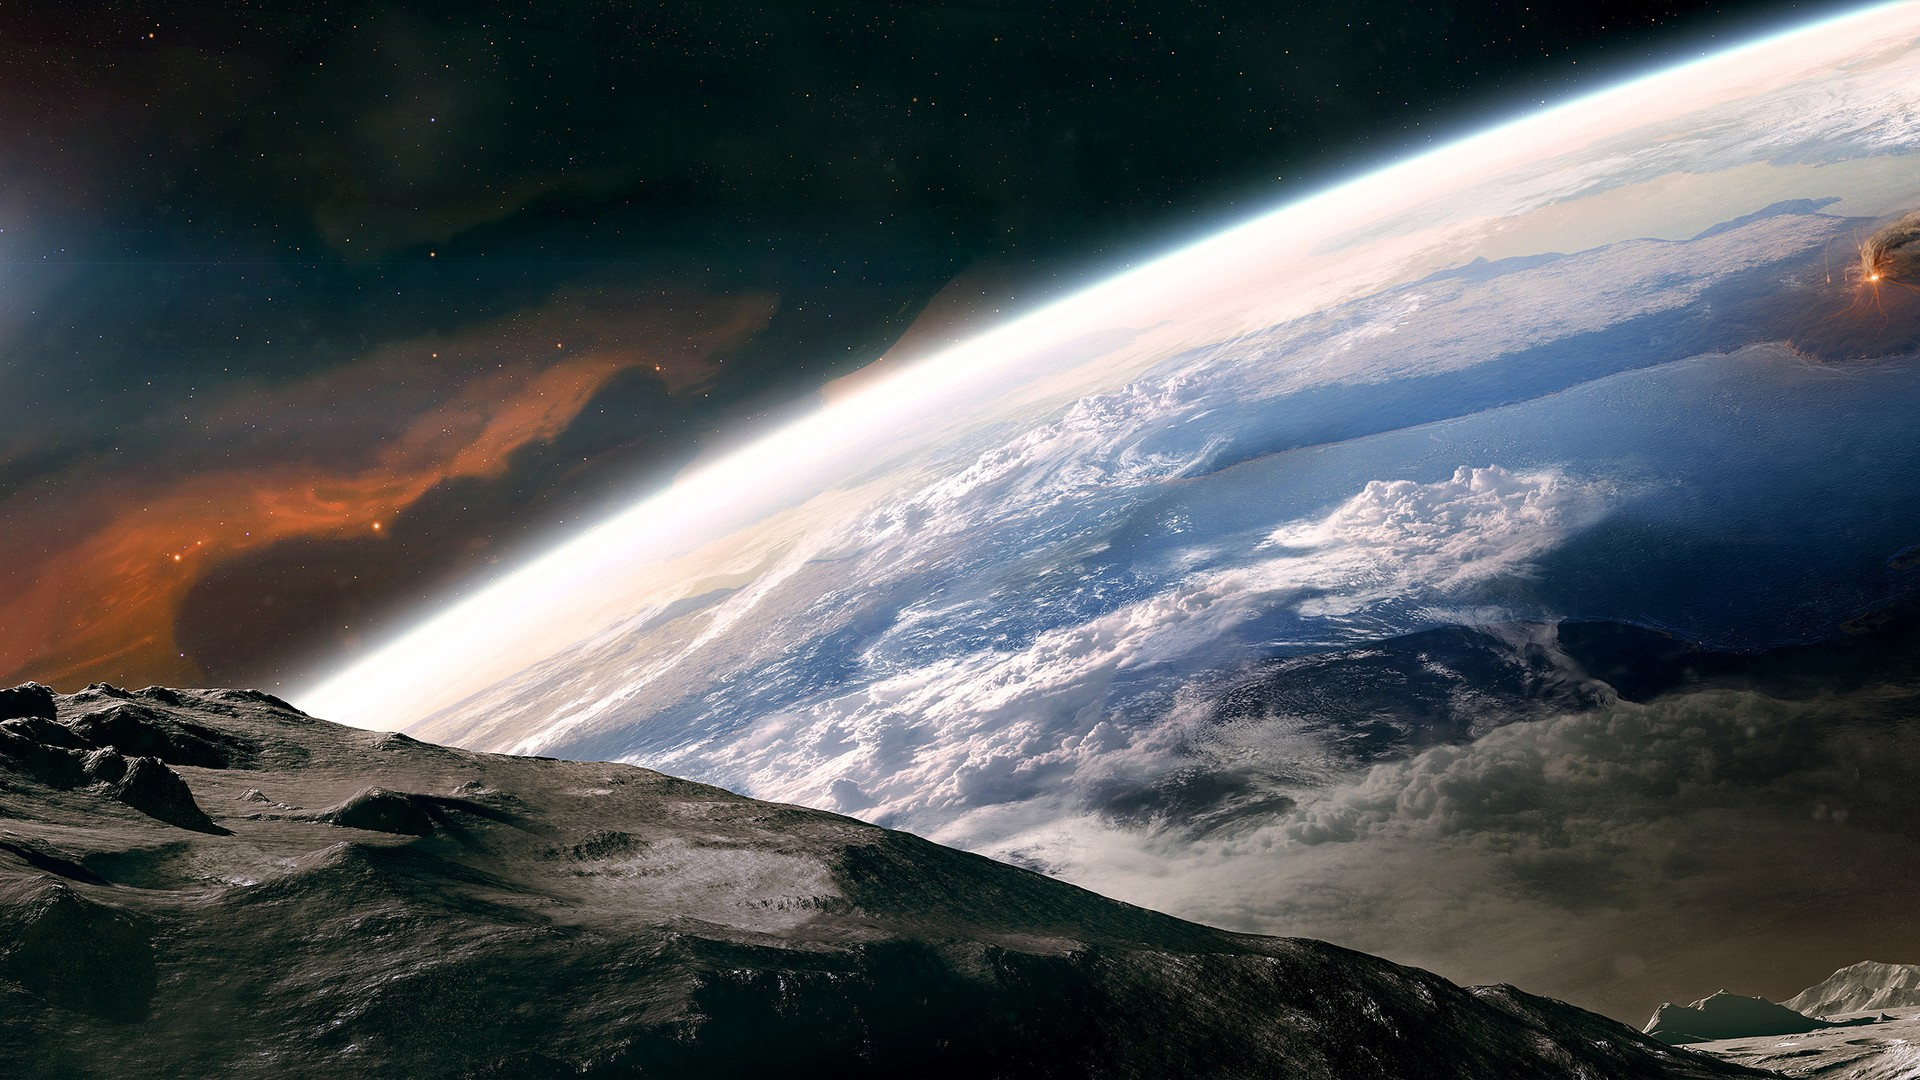 1920x1080 3D Digital Art Space Scene HD Wallpapers and Backgrounds